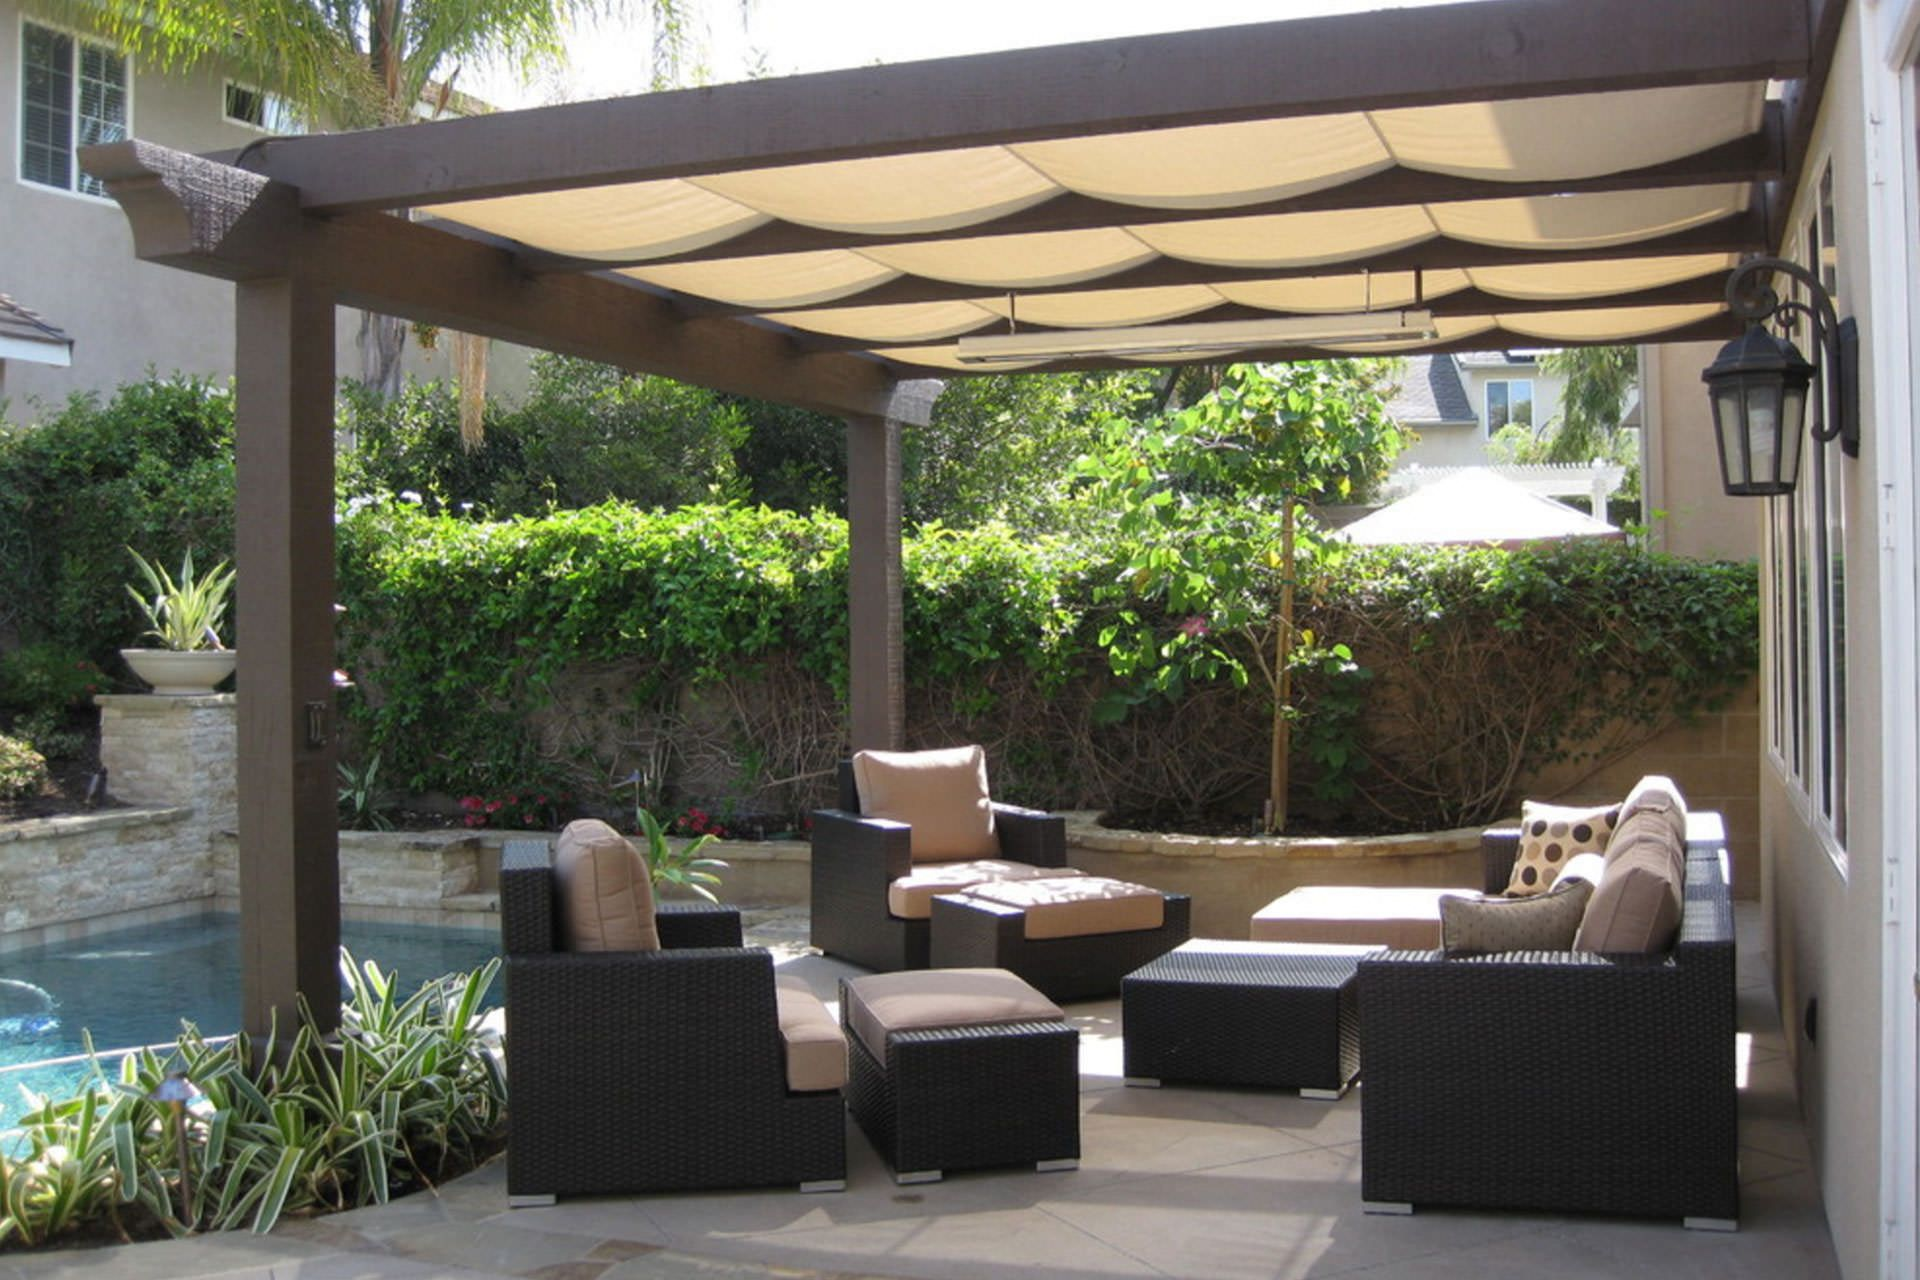 Retractable canopy for pergola - Find Out Which Pergola Shade Option Is Best For Your Space Tips On Deciding Between